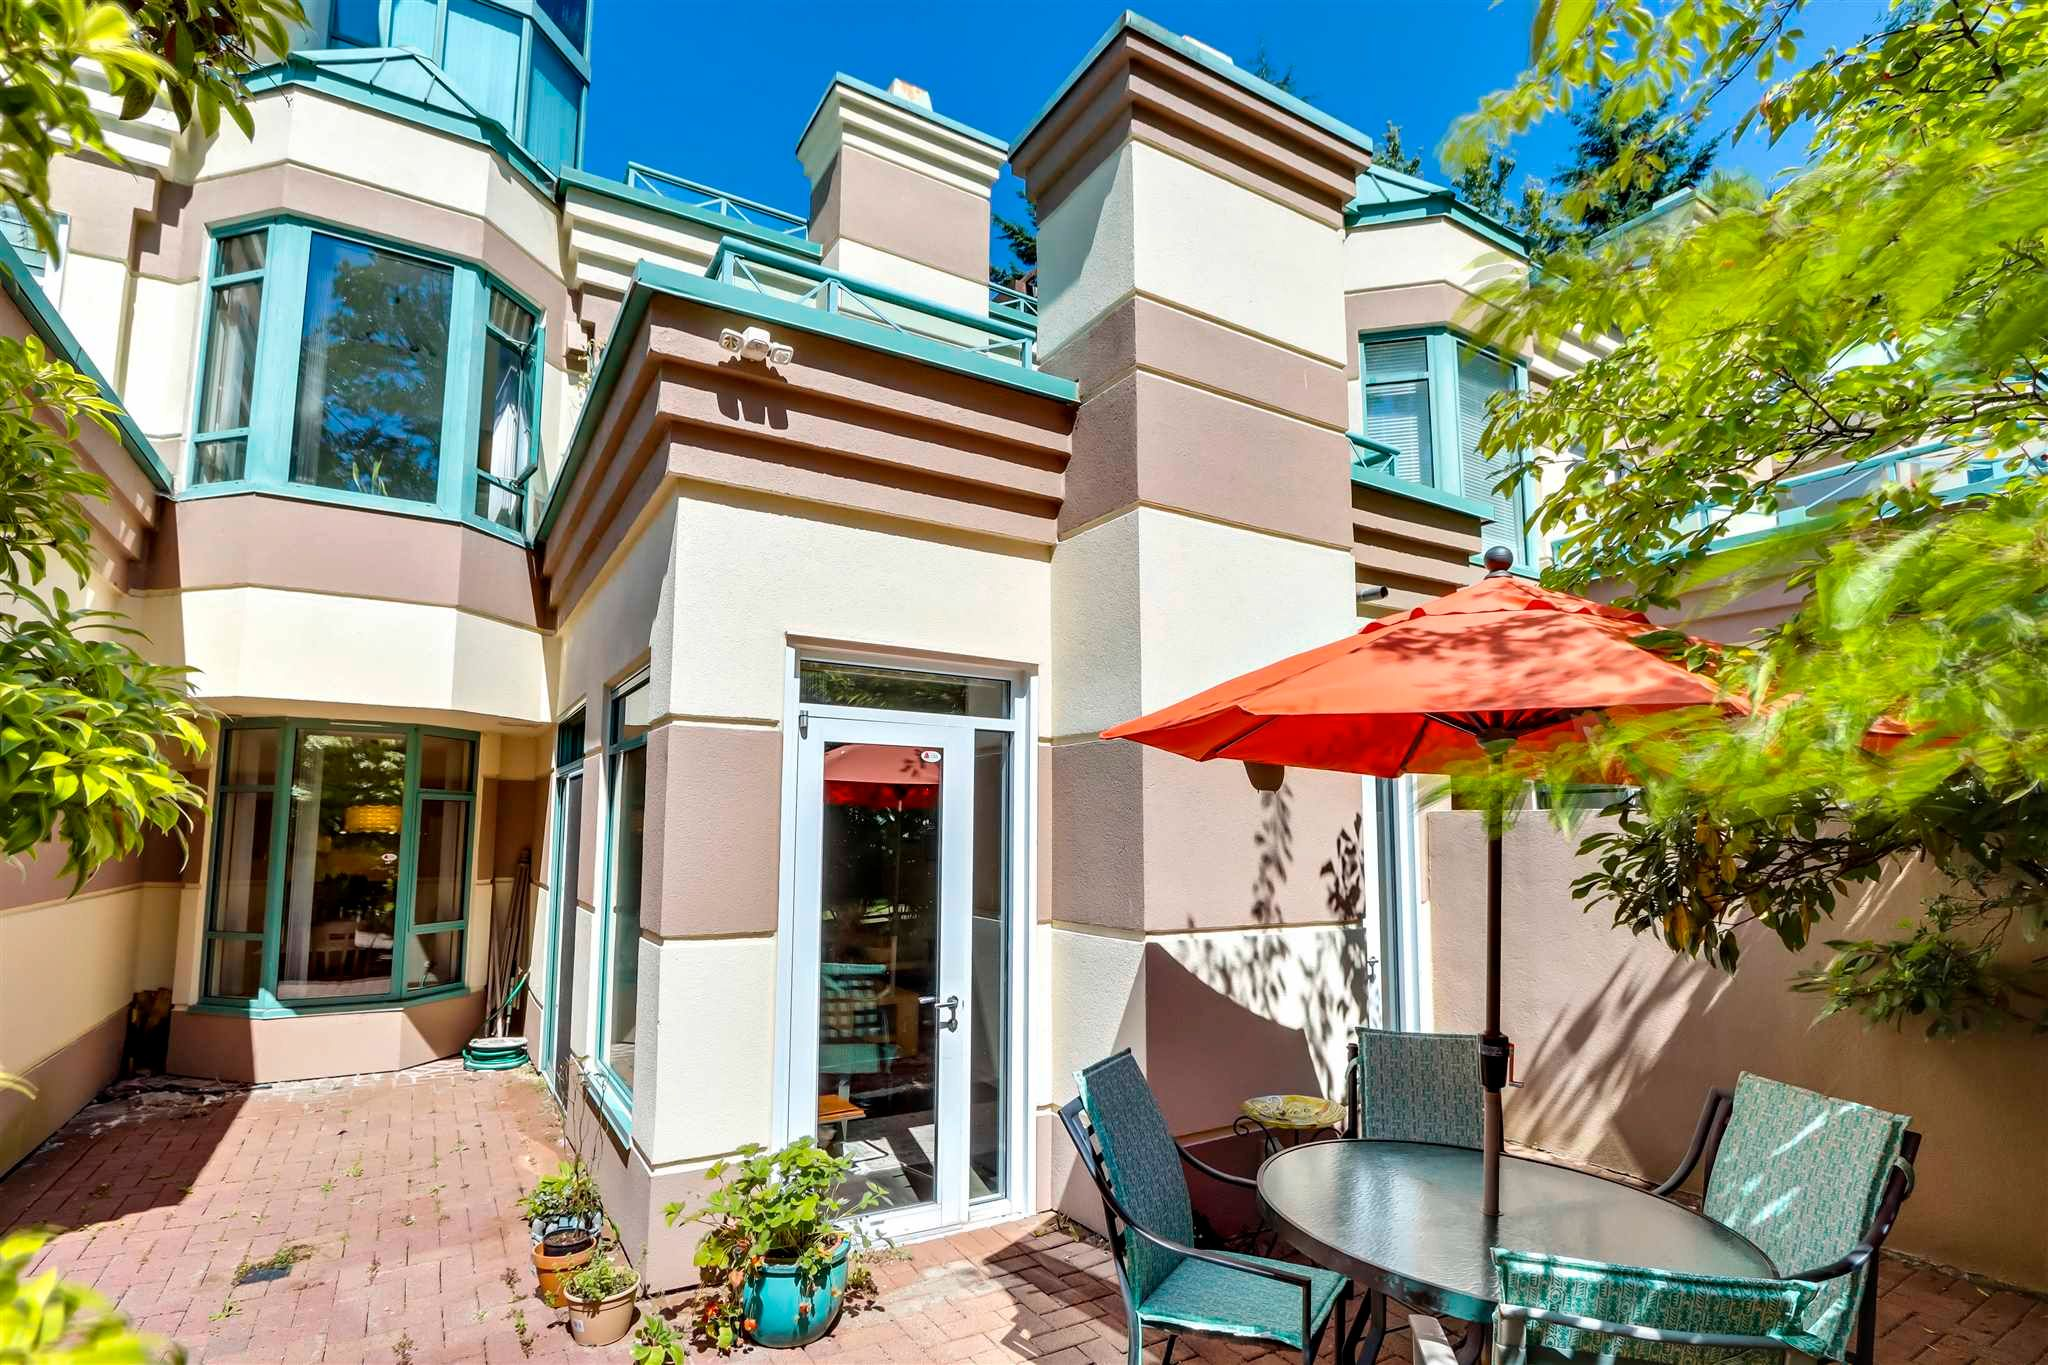 Main Photo: 362 TAYLOR WAY in West Vancouver: Park Royal Townhouse for sale : MLS®# R2596220